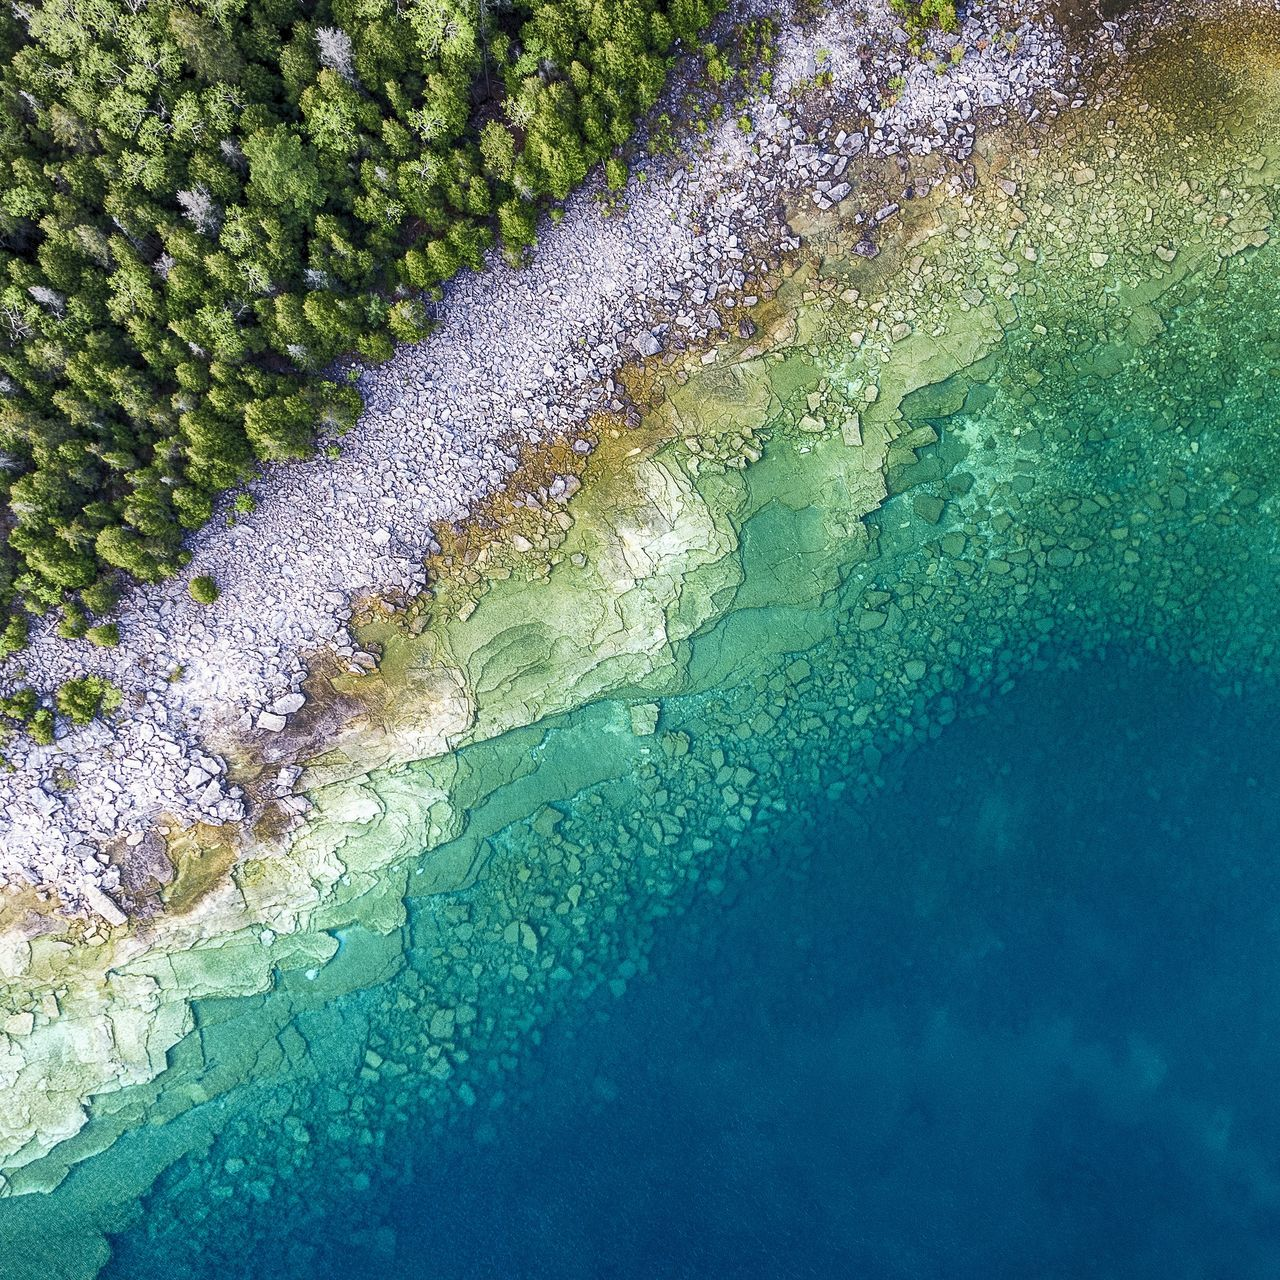 High Angle View Water Textured  Full Frame Nature Blue Fresh Pure Clean Coastal Water_collection Clear Shoreline Sea Stone Great Lakes Aerial Drone  Aerial View Lake Multi Colored Wilderness Scenics Pattern Geology The Great Outdoors - 2017 EyeEm Awards